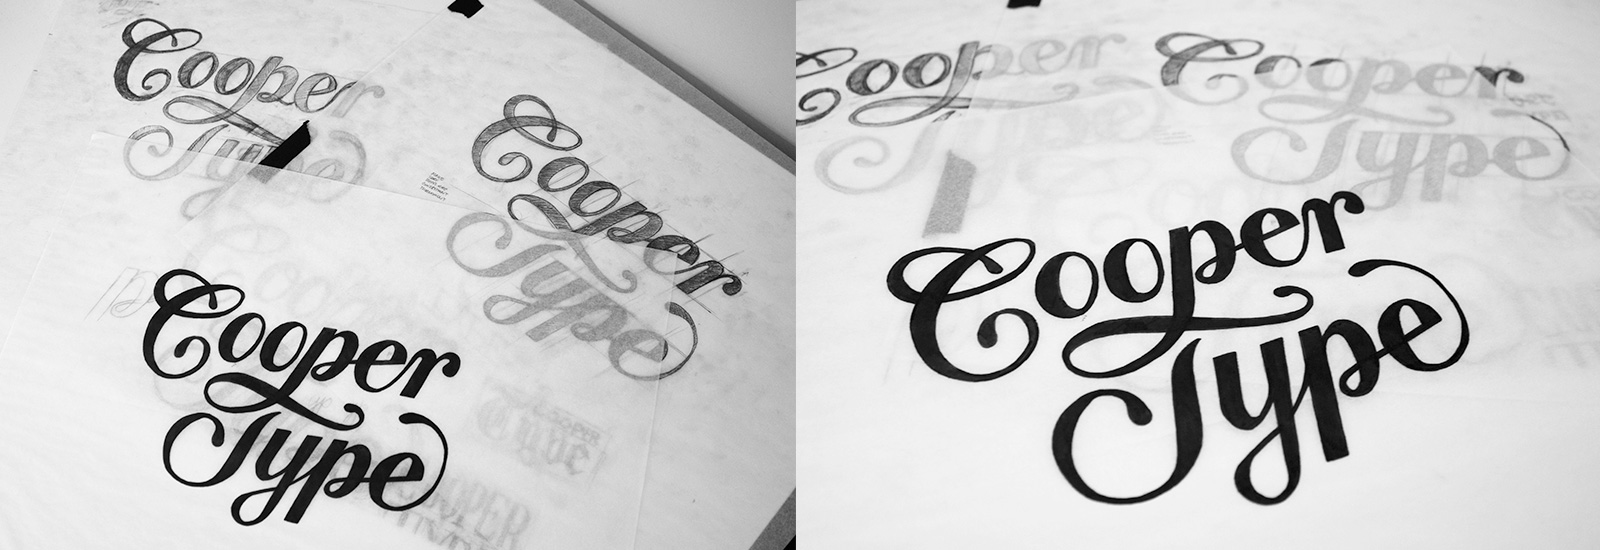 cooper-term1-drawnletters1